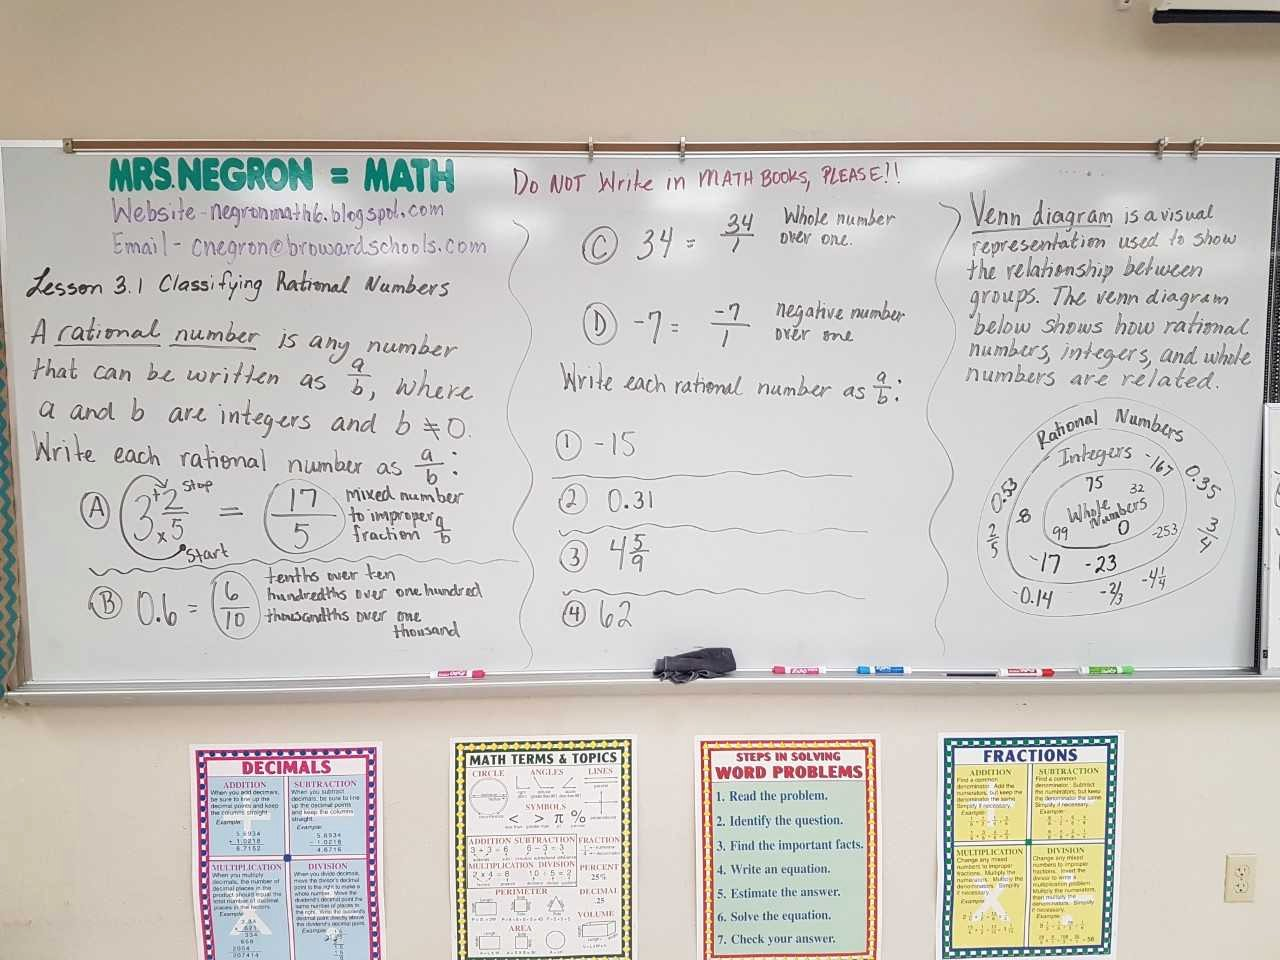 Classifying Rational Numbers Worksheet Best Of Mrs Negron 6th Grade Math Class Lesson 3 1 Classifying